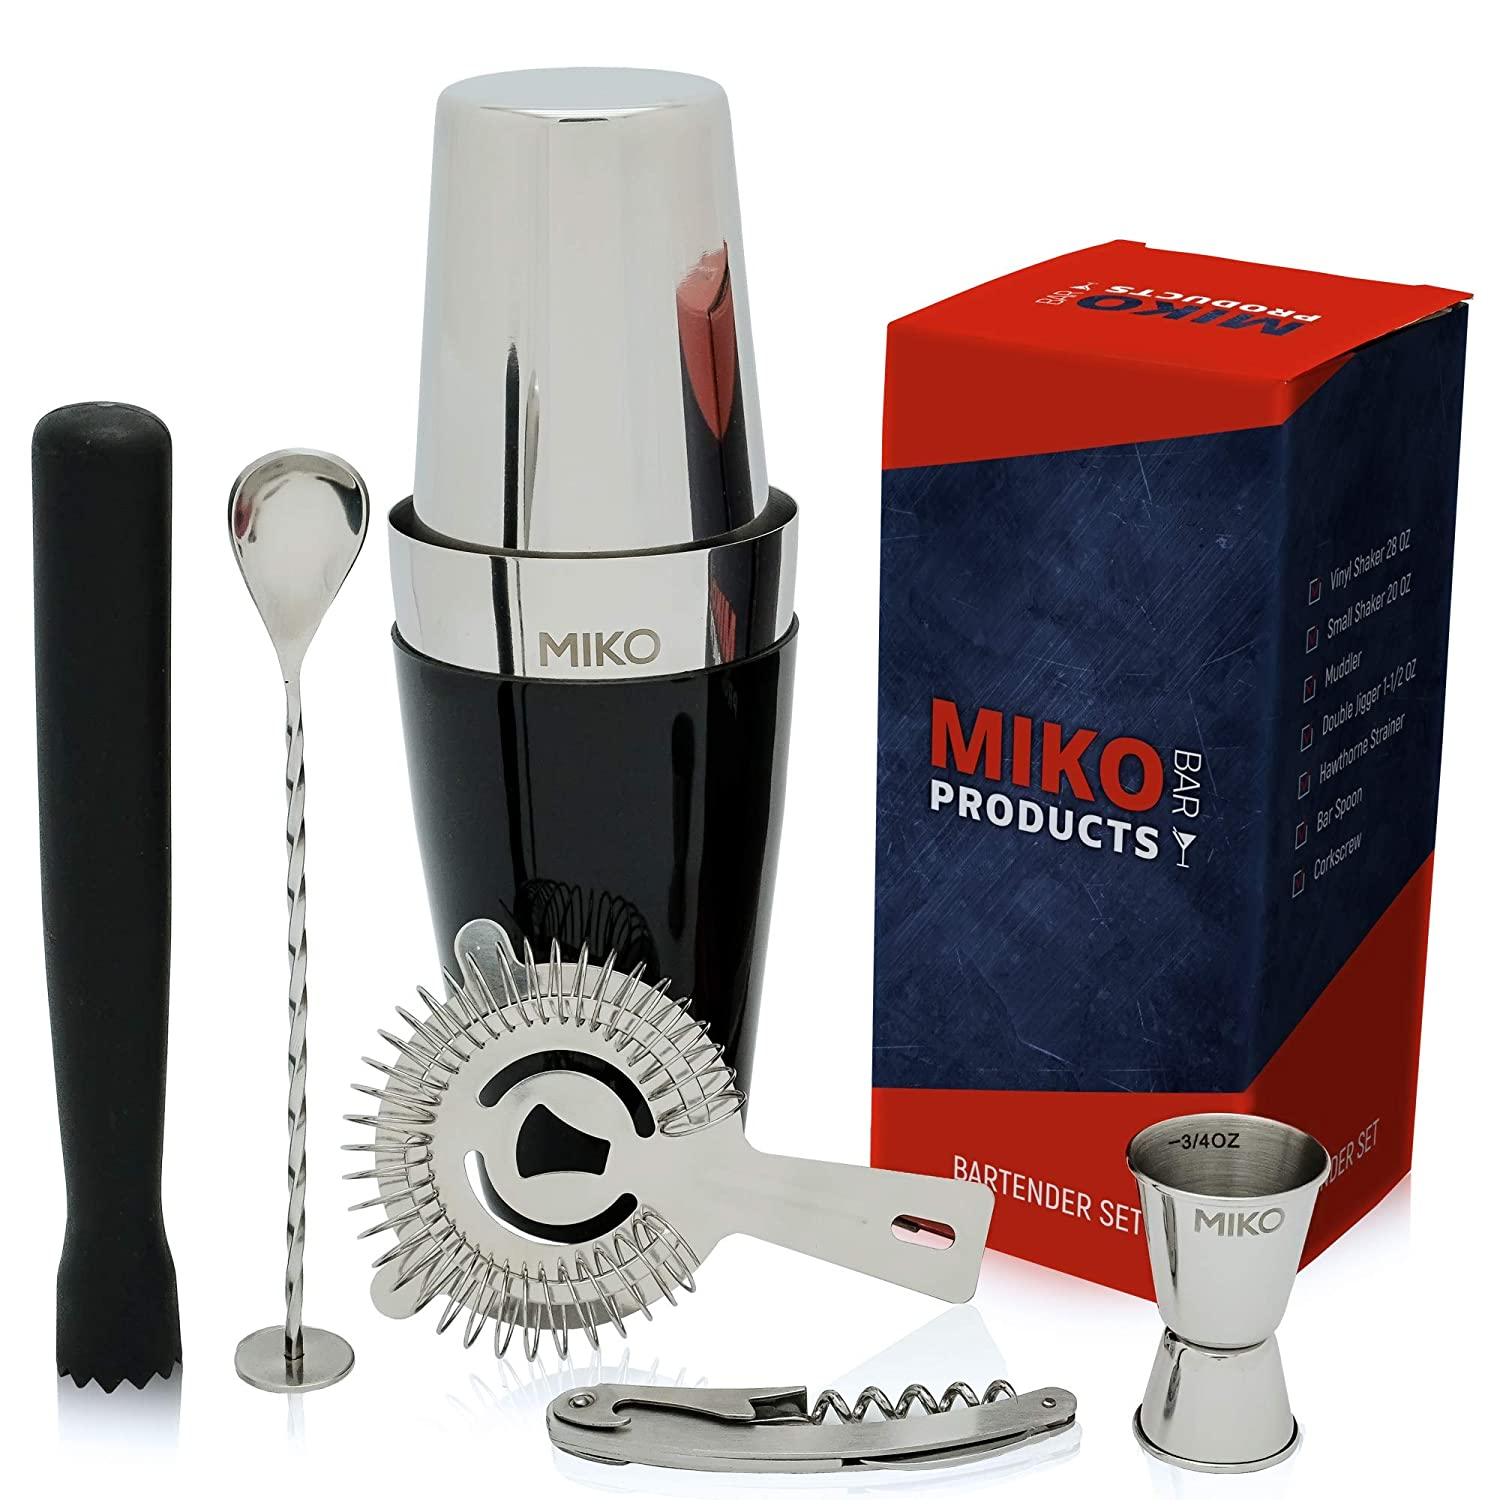 Professional Bartender Kit - Cocktail Shaker Bar Set - Includes Bar Tools & Bartender Accessories: Boston Cocktail Shaker,Muddler,Strainer,Jigger,Bar Spoon,Corkscrew and Bonus Recipes EBook MiKO MBK 0077